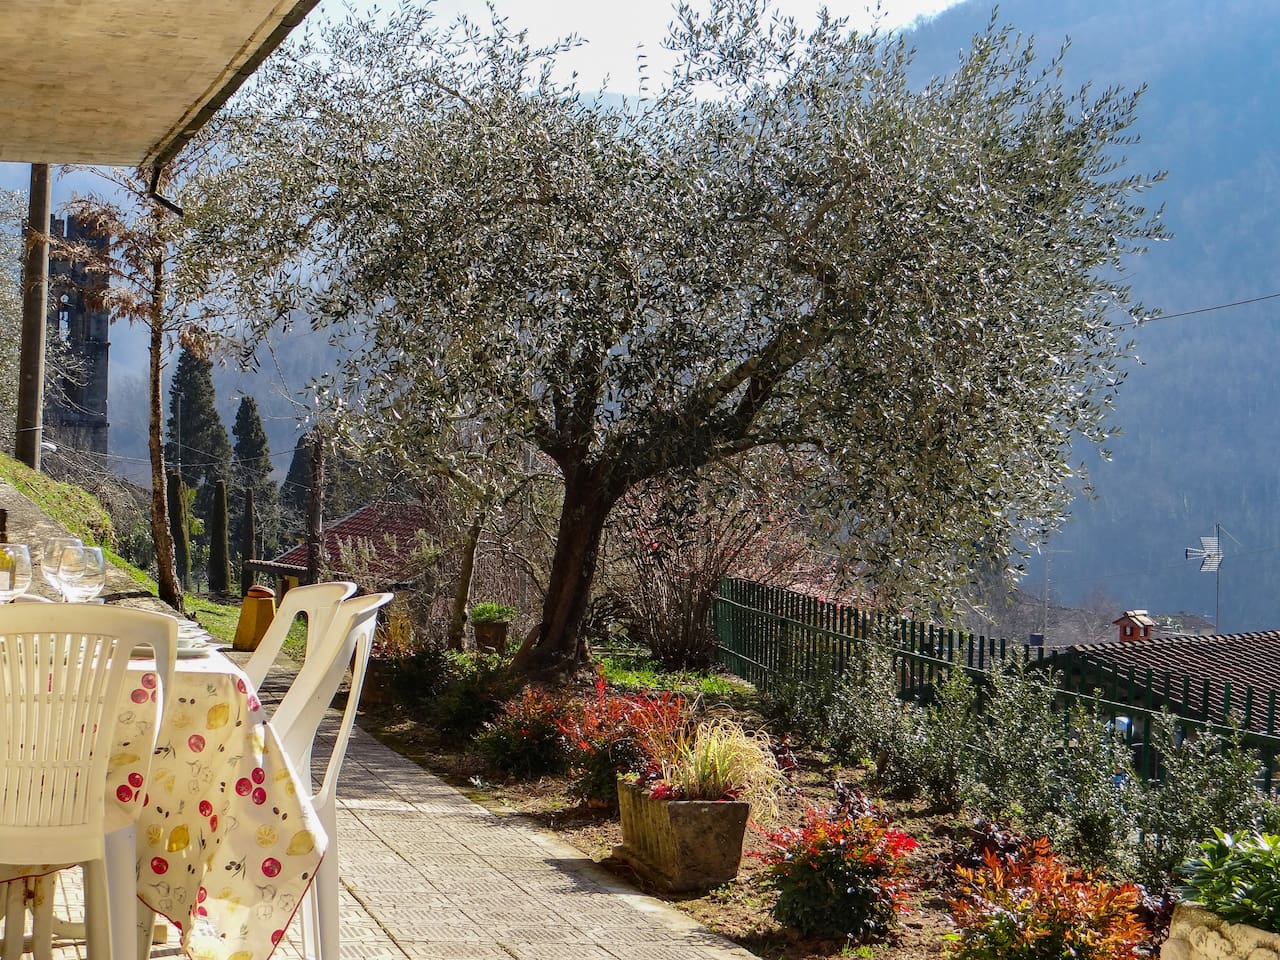 This hearty olive tree gives Villa Corsena a truly Tuscan feel.